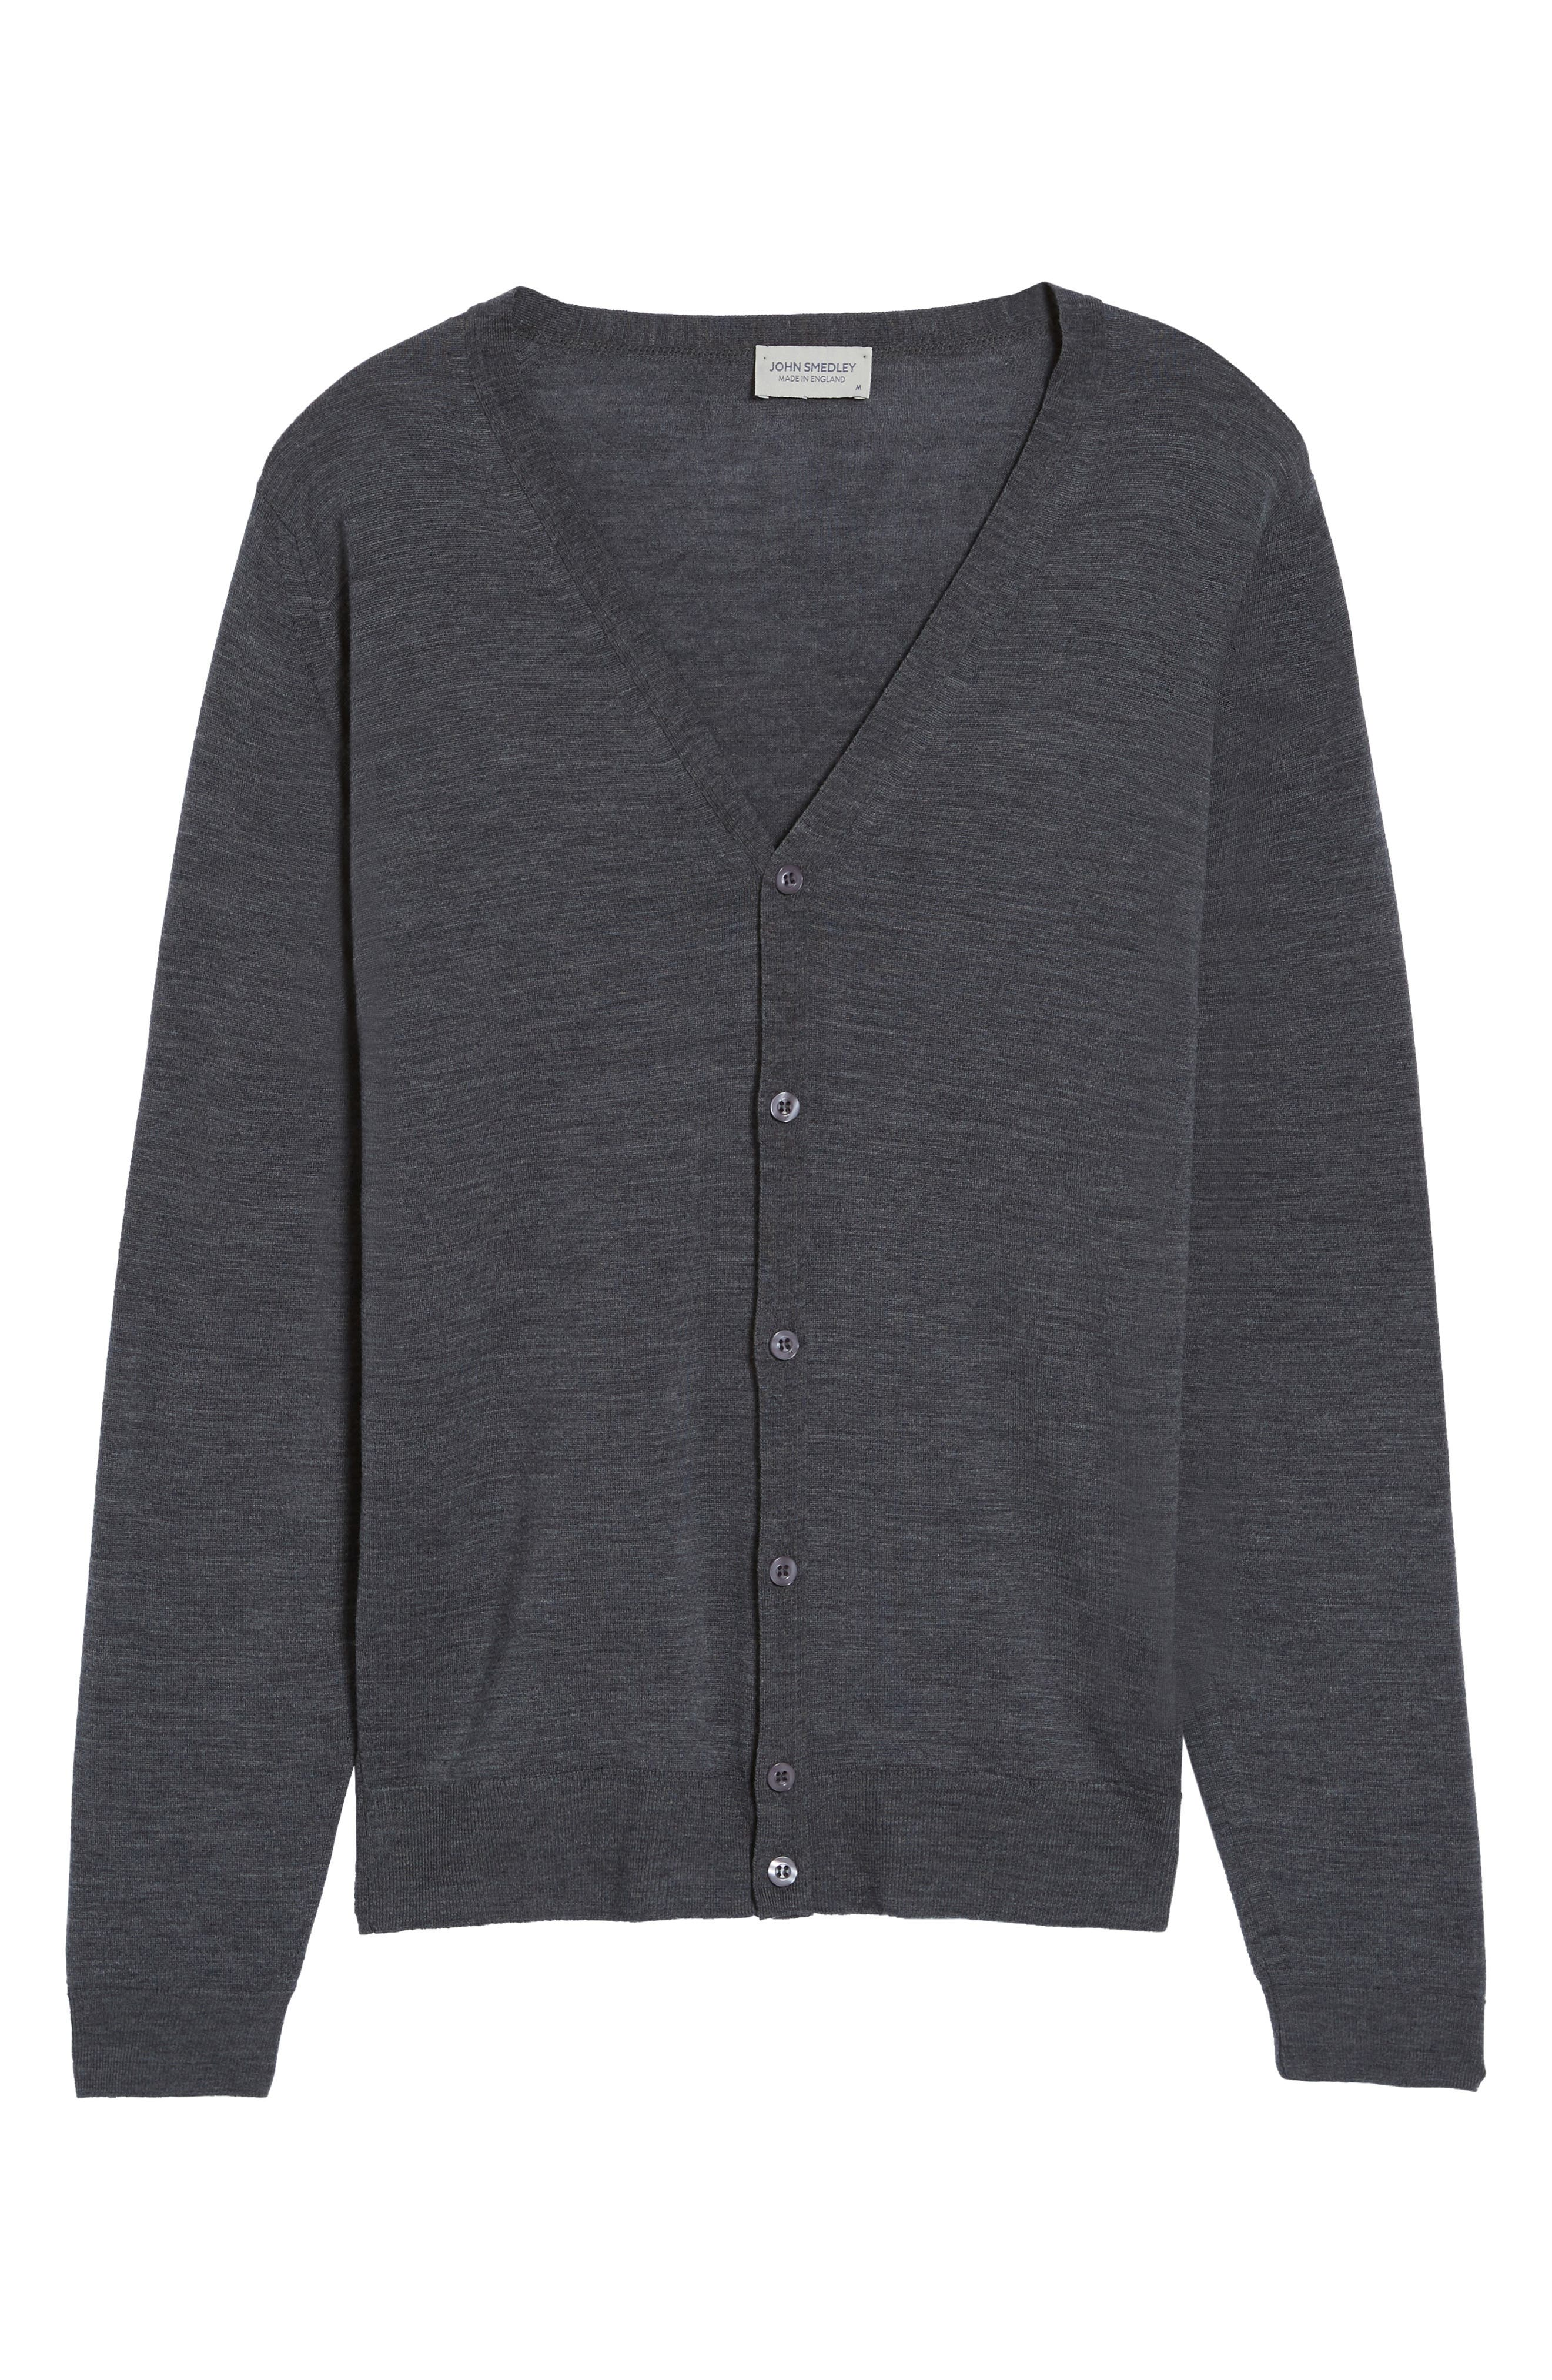 Standard Fit Wool Cardigan,                             Alternate thumbnail 6, color,                             020